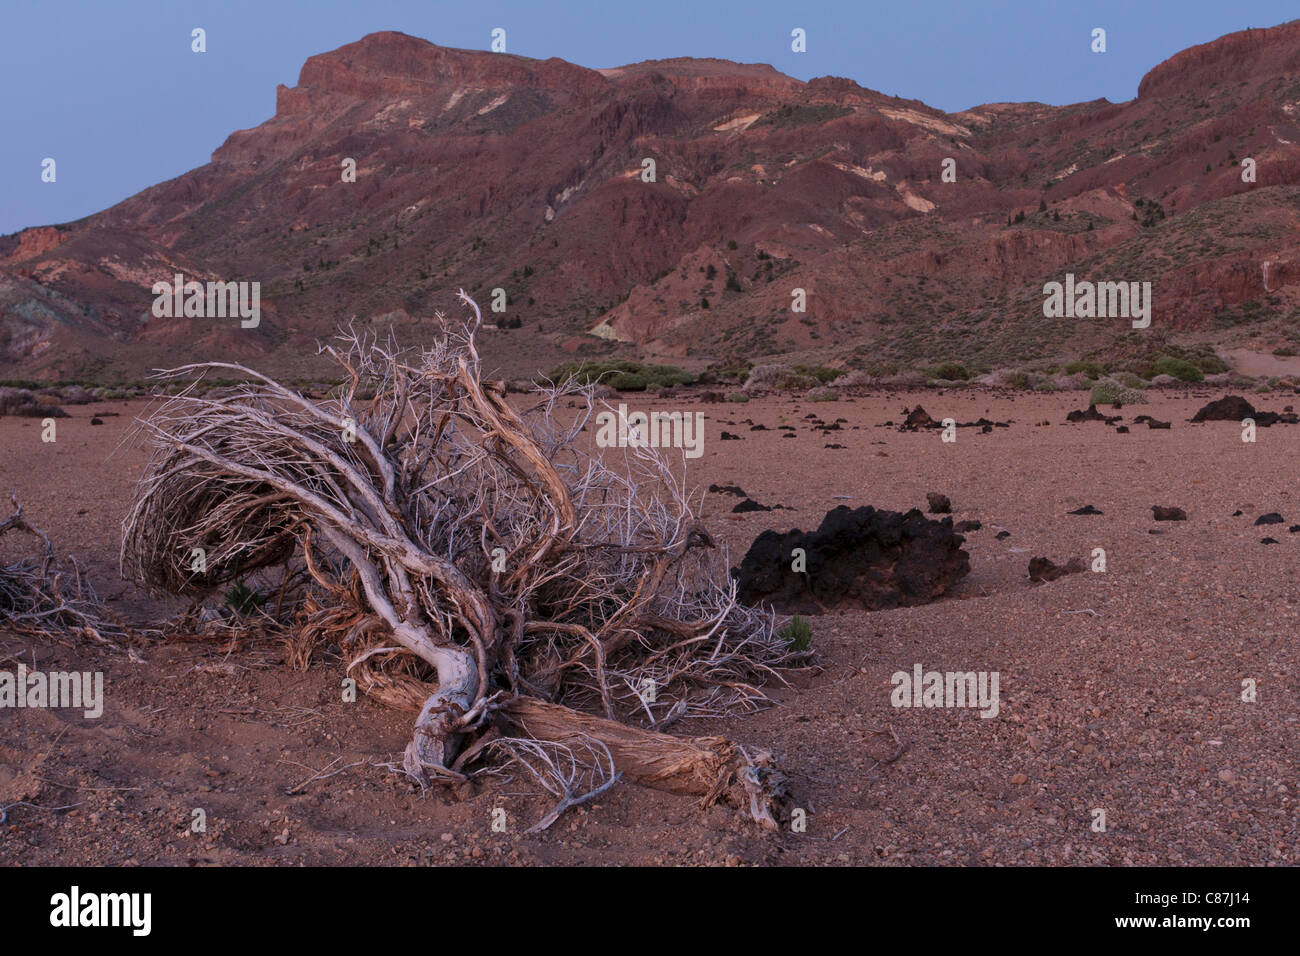 View across the Llano de Ucanca in the Las Canadas del Teide national park on Tenerife, Canary Islands, Spain - Stock Image